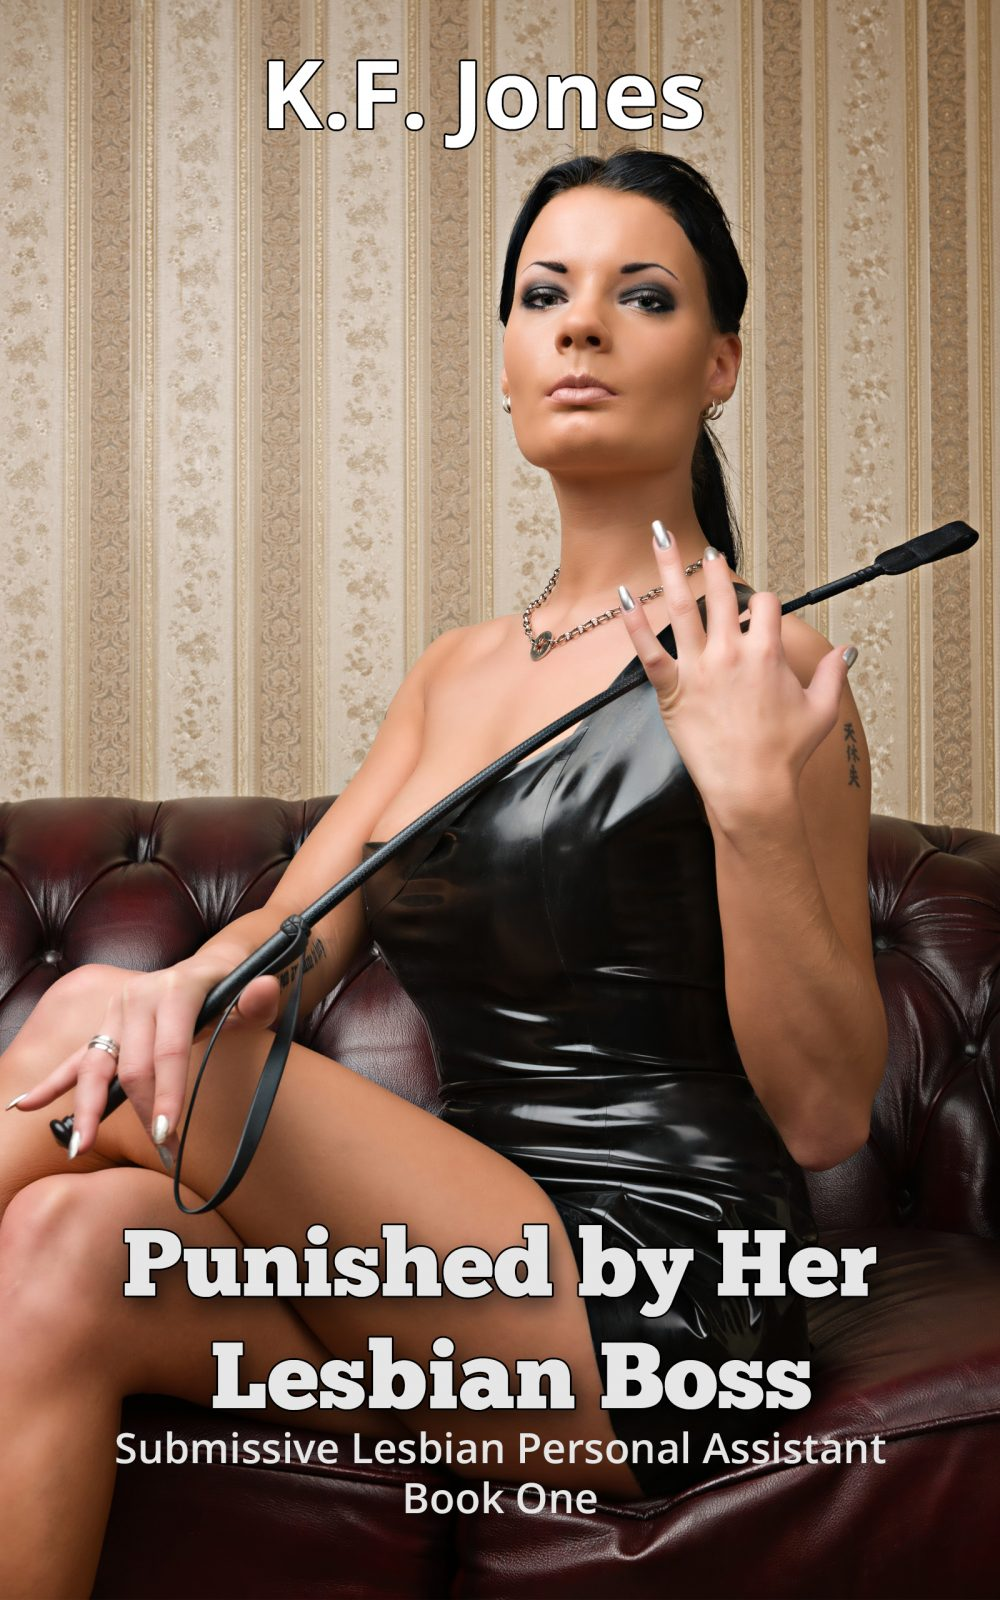 Punished by Her Lesbian Boss